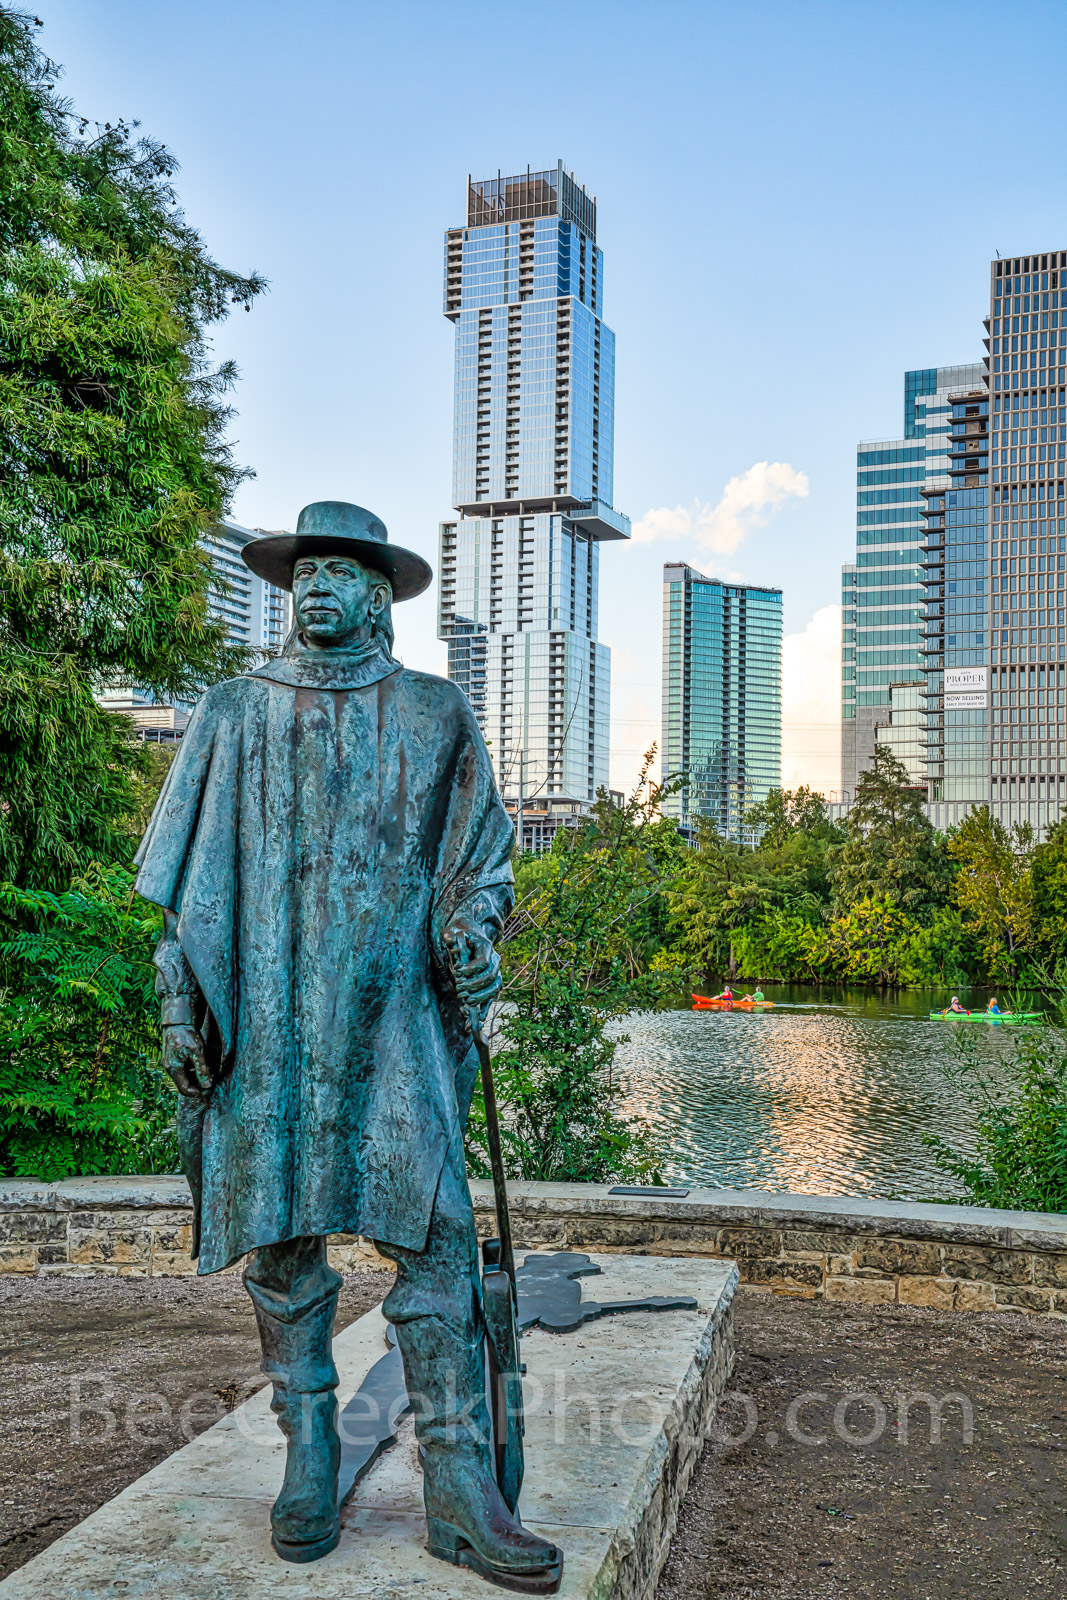 Austin, skyline, Stevie Ray Vaughan statue, bronze, Independent, Jingle, high rise, skyscraper, austin skyline pictures, Lady Bird Lake, Butler hike and bike trail, blues, guitar, rock and roll hall o, photo